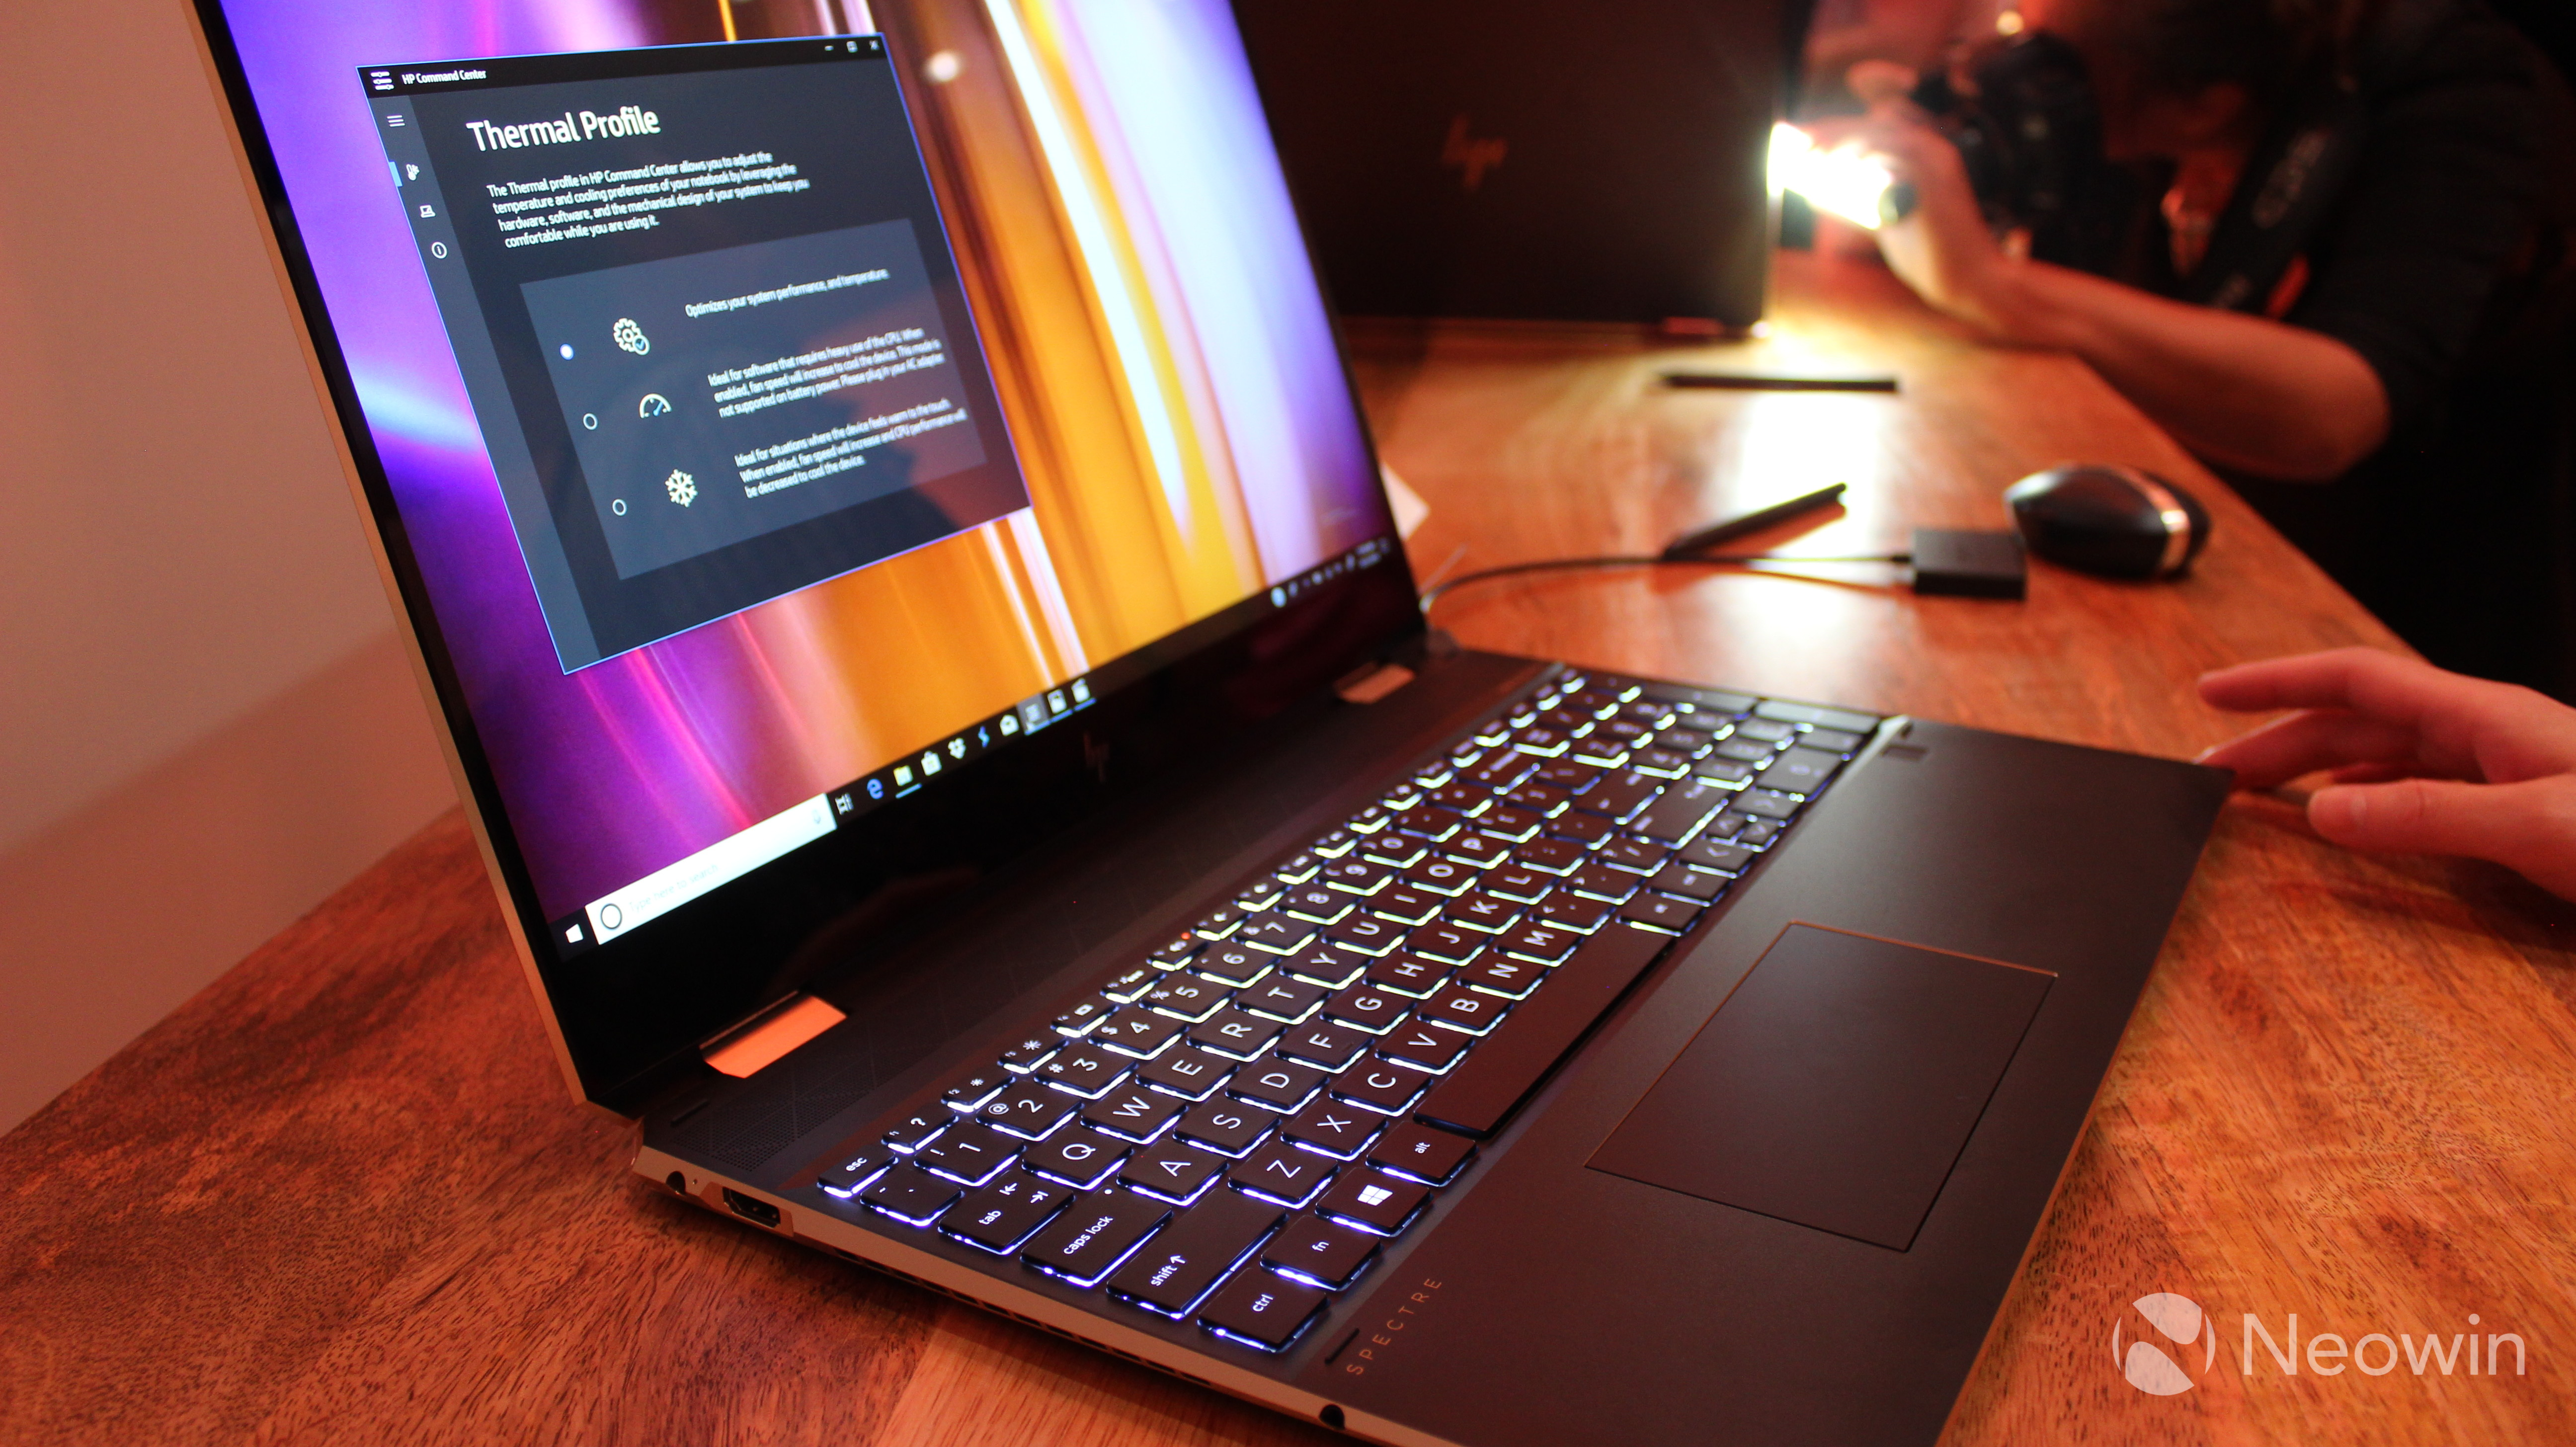 HP's new Spectre x360 PCs have 4G LTE and a stunning redesign - Neowin